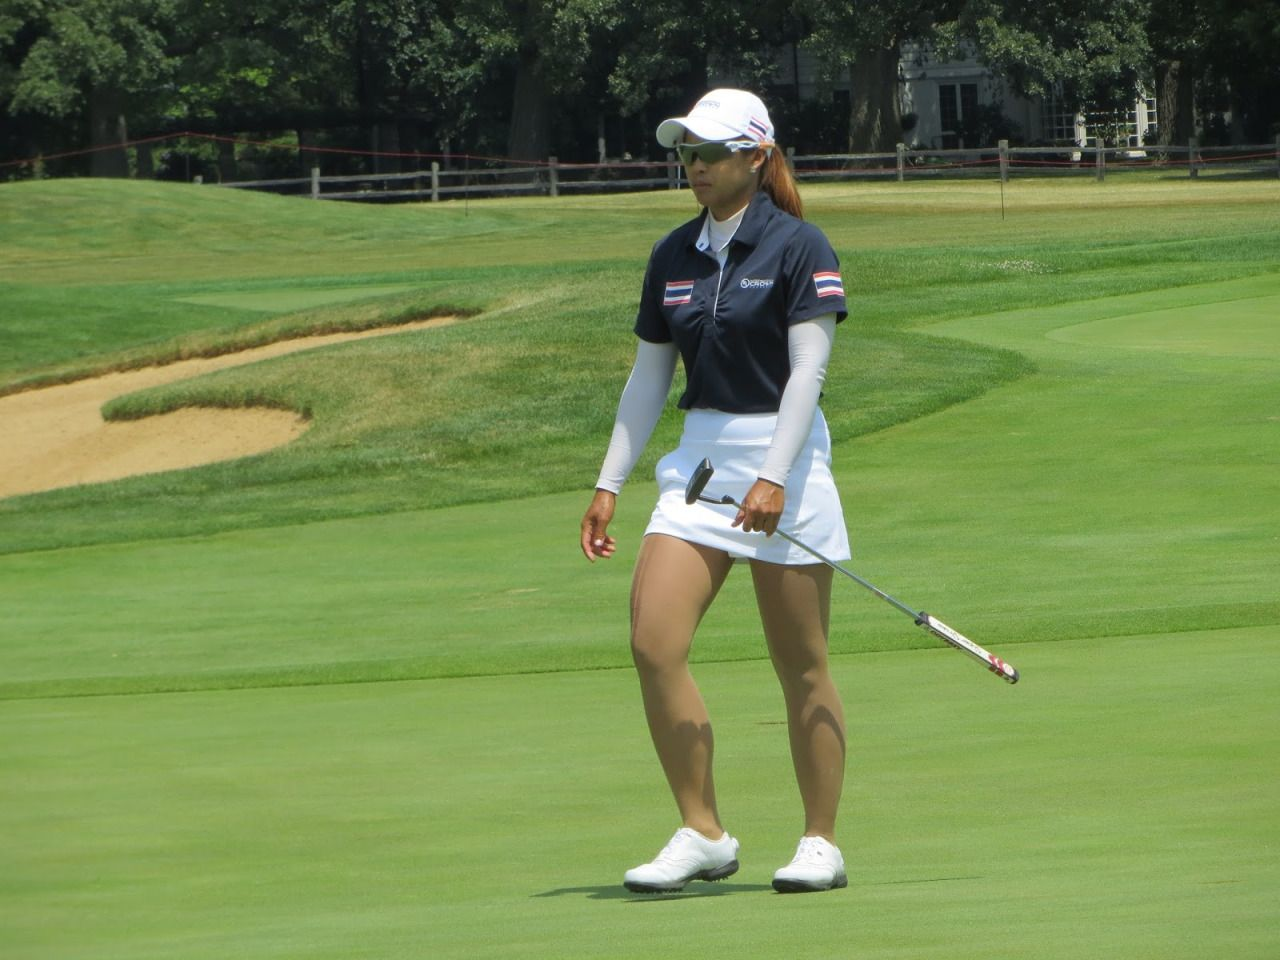 Lpgatights Golf Outfits Women Cute Golf Outfit Girl Golf Outfit